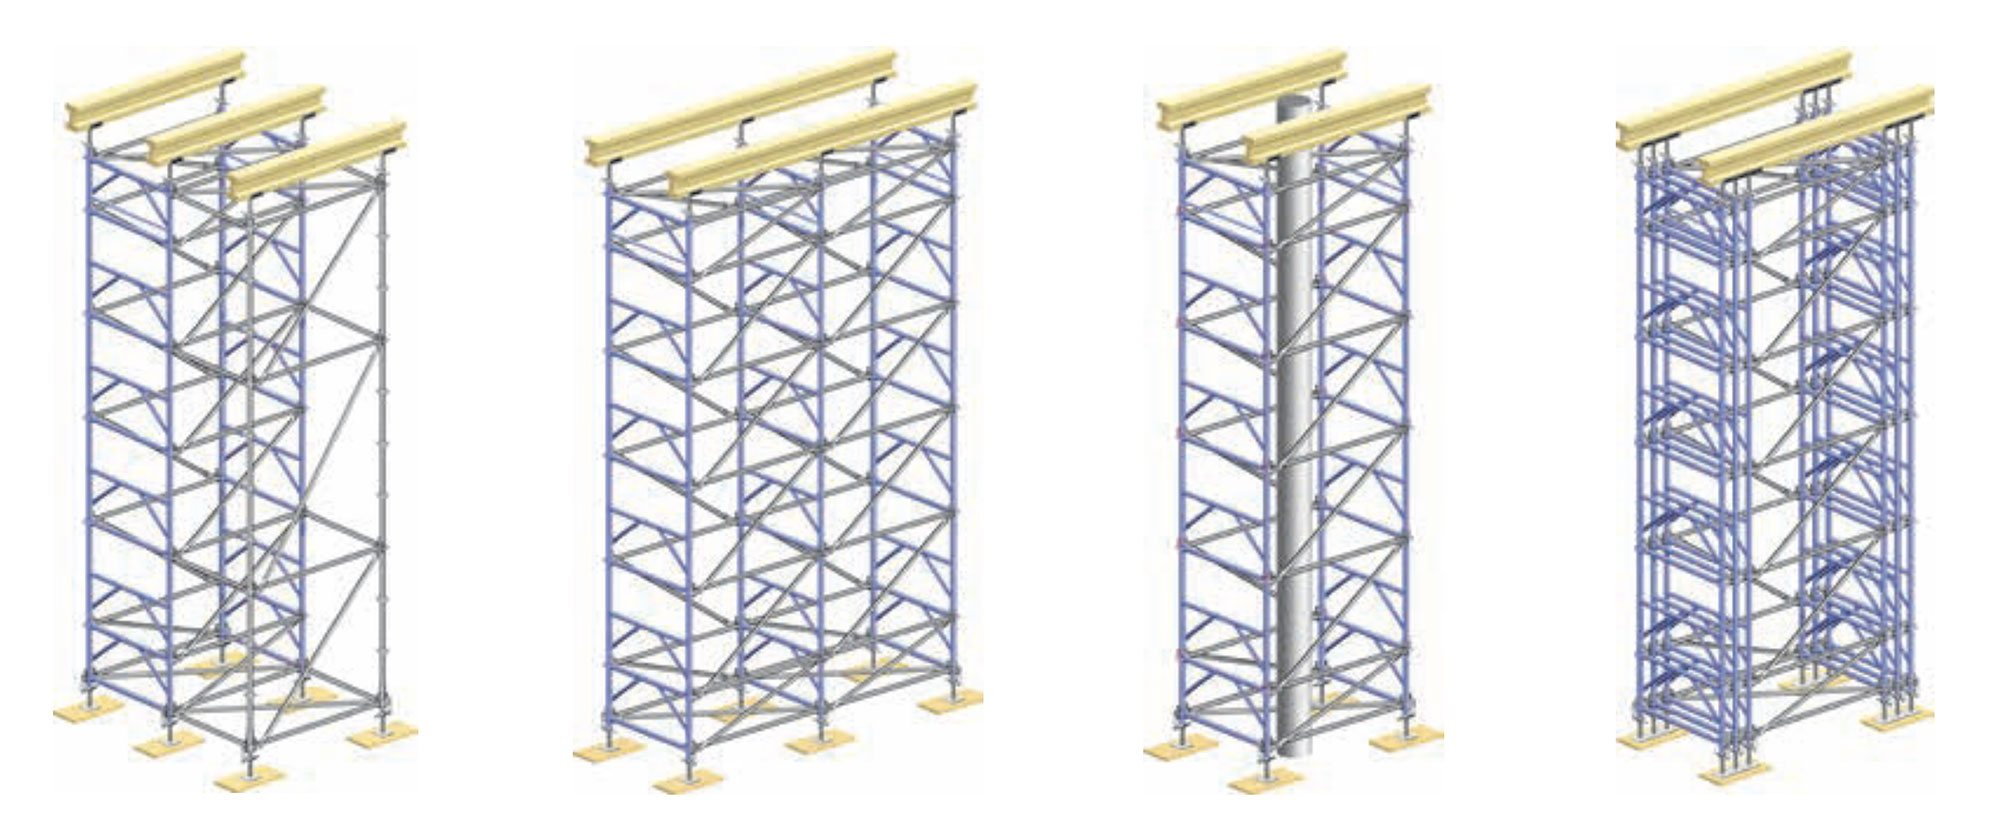 Bundling frames increases load capacities of towers